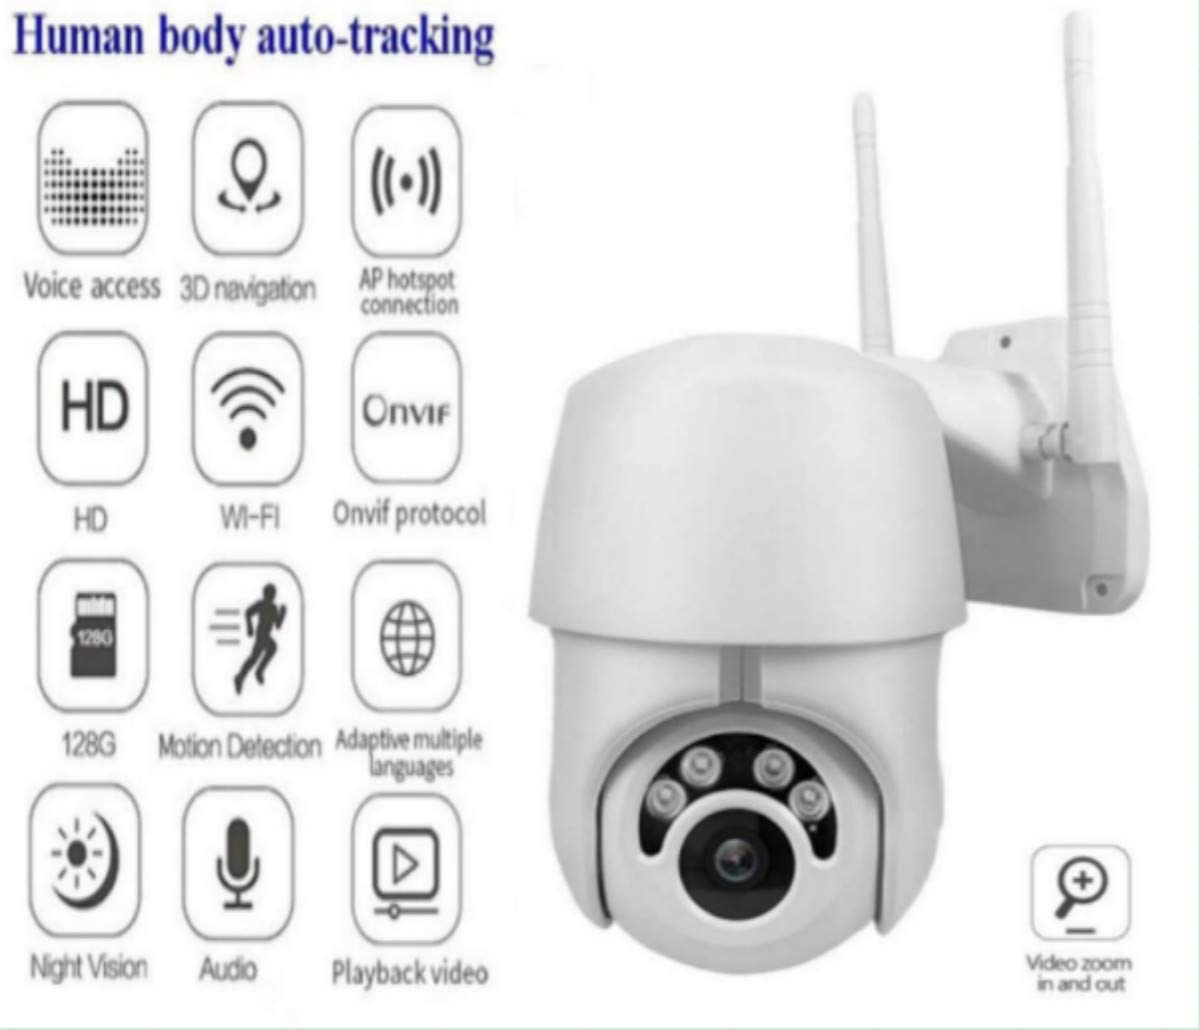 1080P PTZ Outdoor IP Camera Topmall1 Speed Wireless WiFi Security Camera Dome Auto-Tracking Pan Tilt Zoom 2MP Net Work Loop Recording CCTV Surveillance by Topmall1